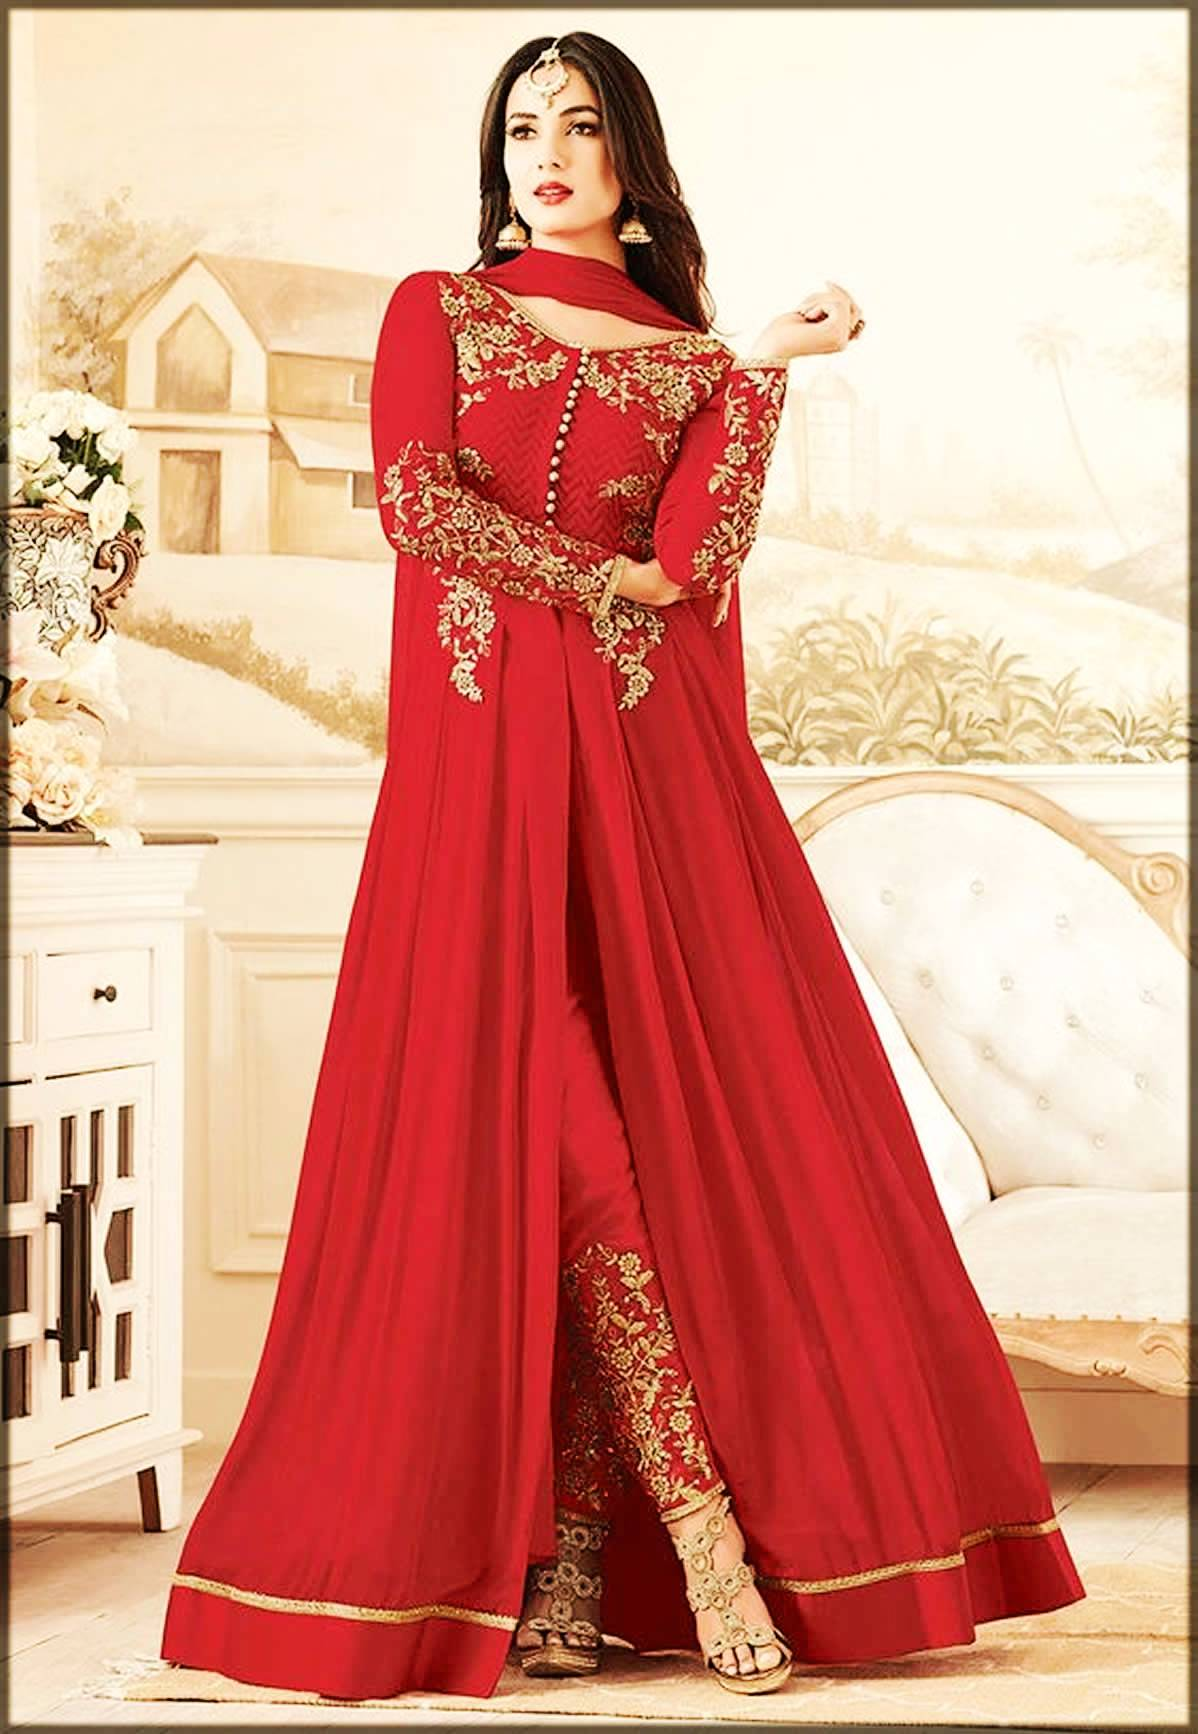 Latest Gown Design For Girls 2021